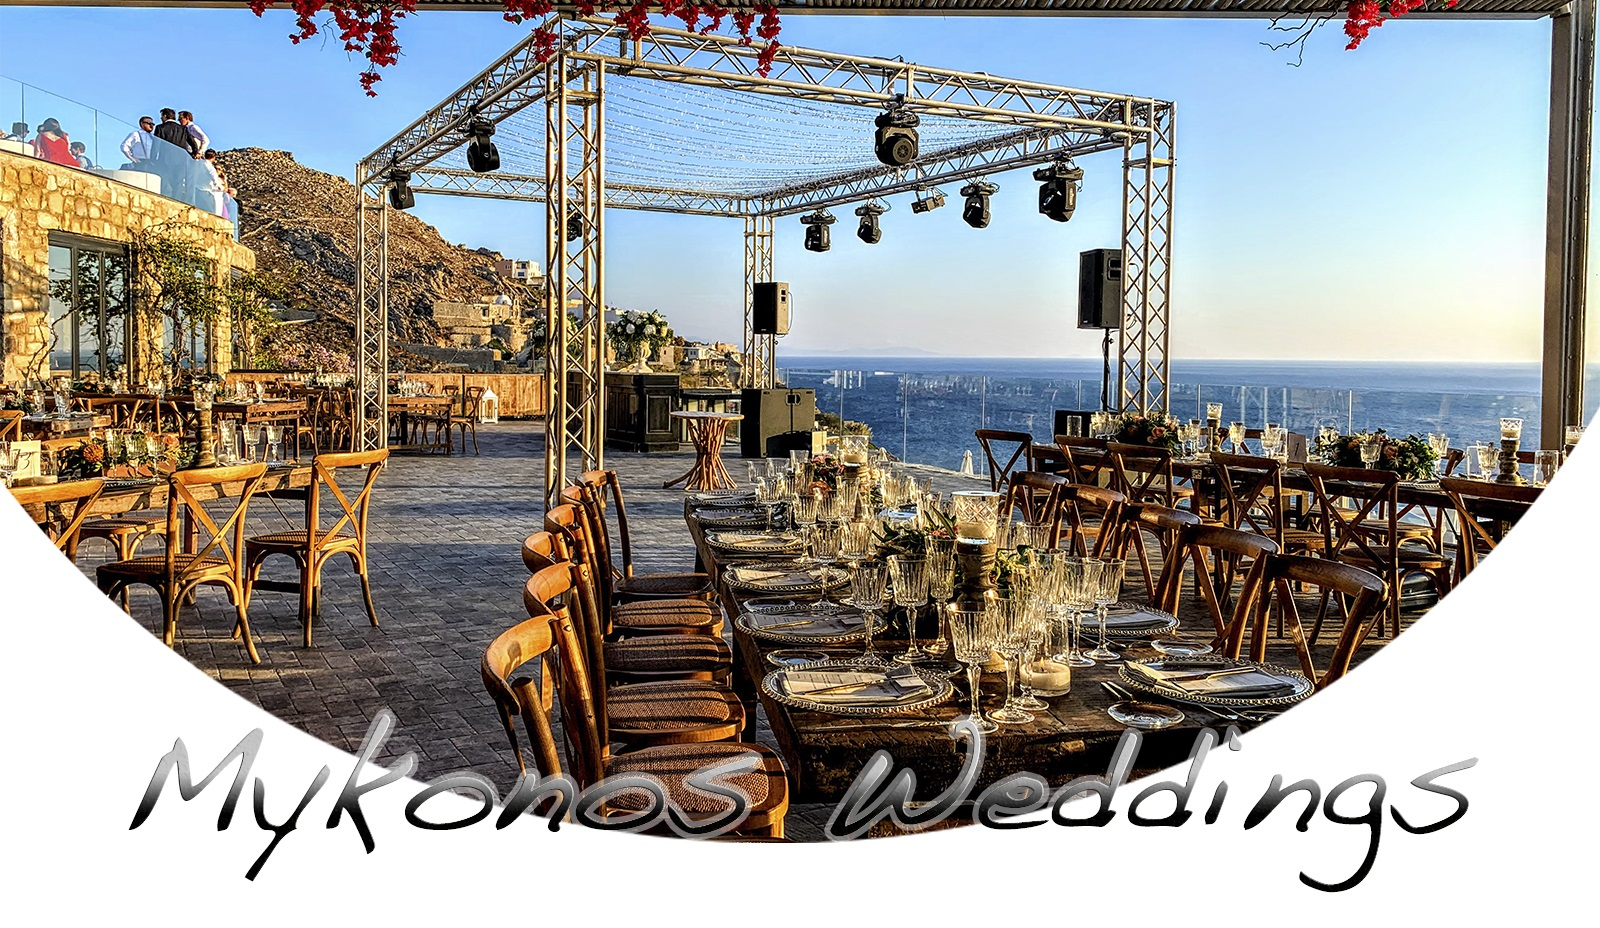 Fountains at Le ciel Santorini, wedding dj in Greece, wedding packages for Santorini Greece, fireworks in Santorini at Le Ciel, Santorini Brides,